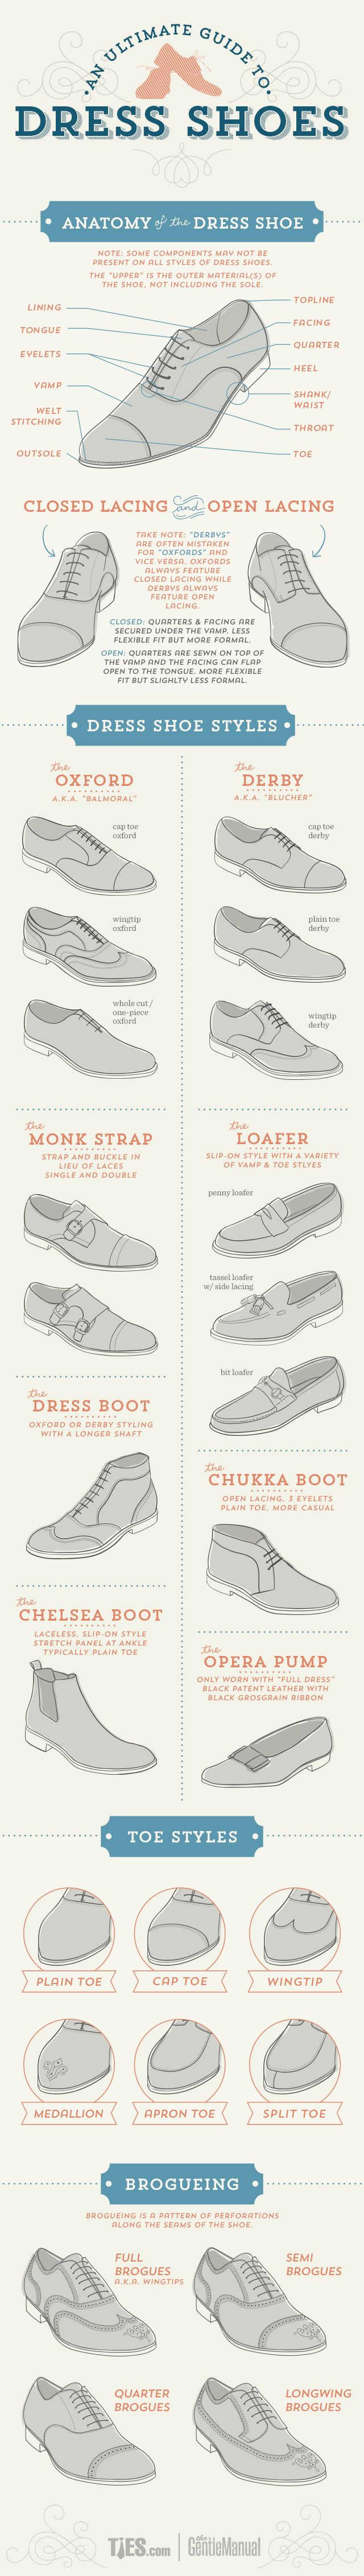 Learn the basics of men's dress shoe types and styles with our all-inclusive infographic that will make finding the perfect pair simple. Oxfords, Derby, Monk Straps, Loafers, and more.